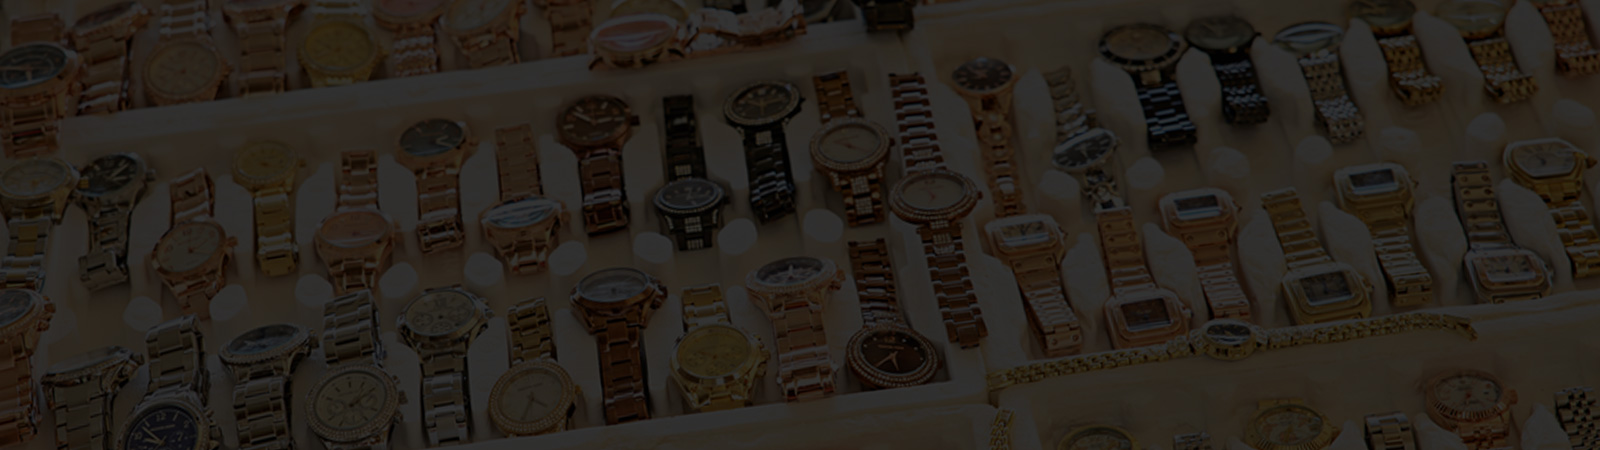 VENDOR REPORT: Reflections-of-Infinity Web Store Sells Replacement Victorinox Swiss Army Watch Bands